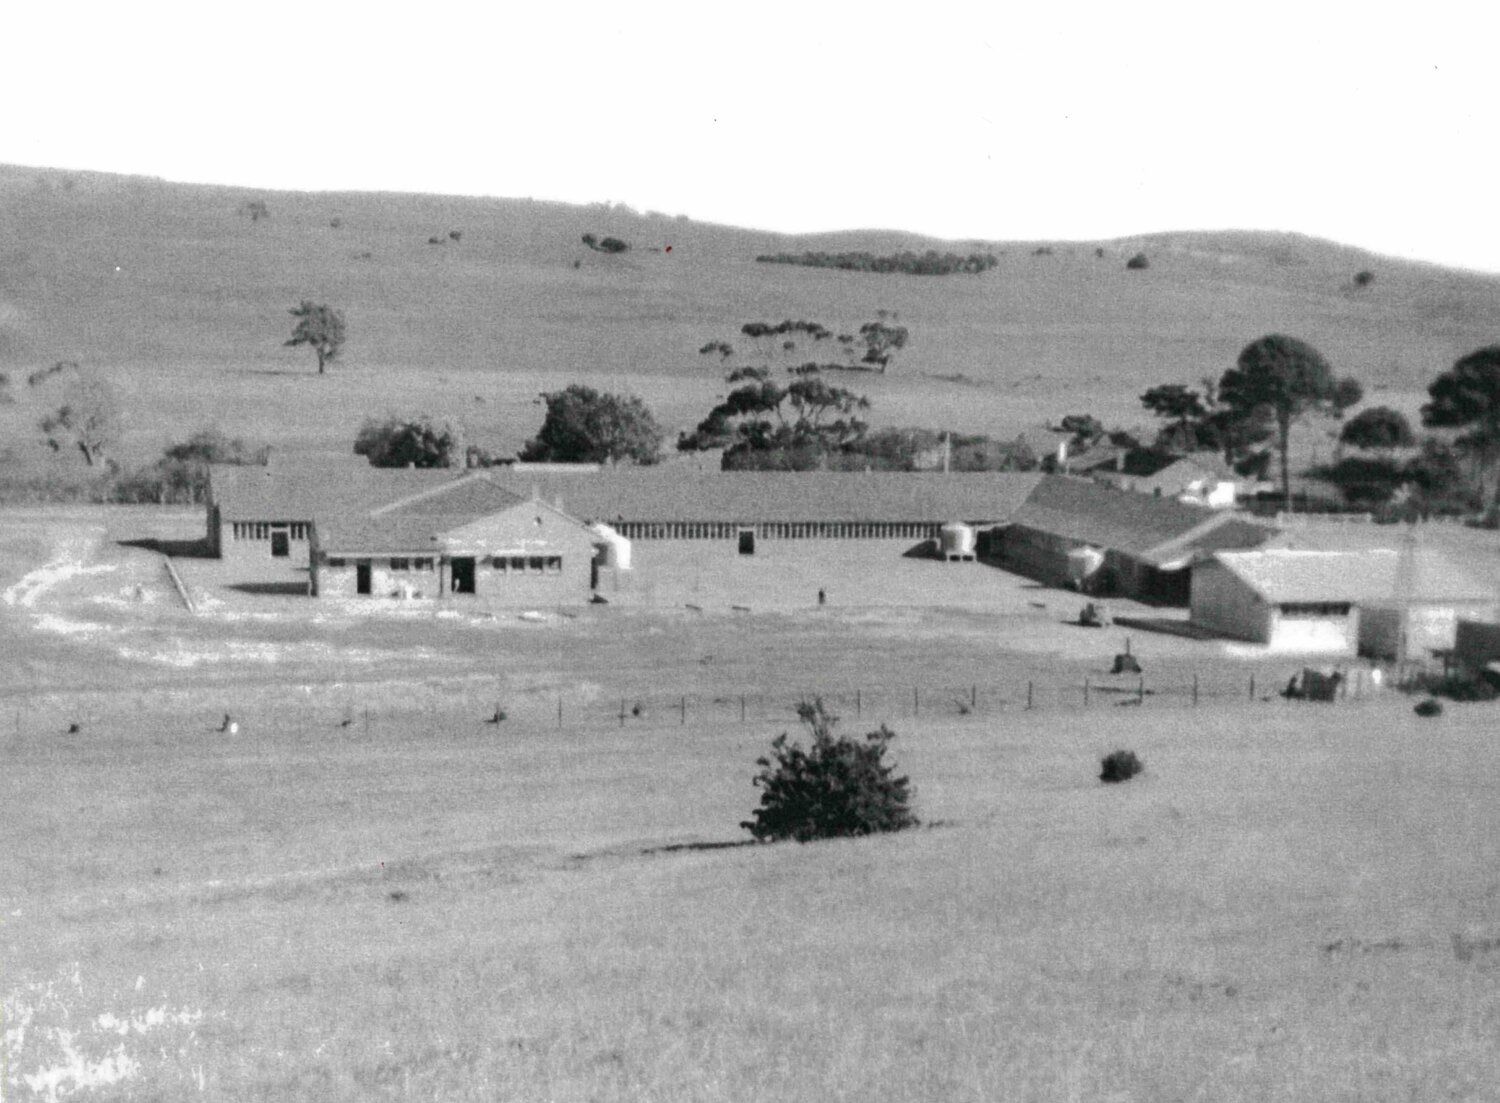 Looking at the back of the school in 1956